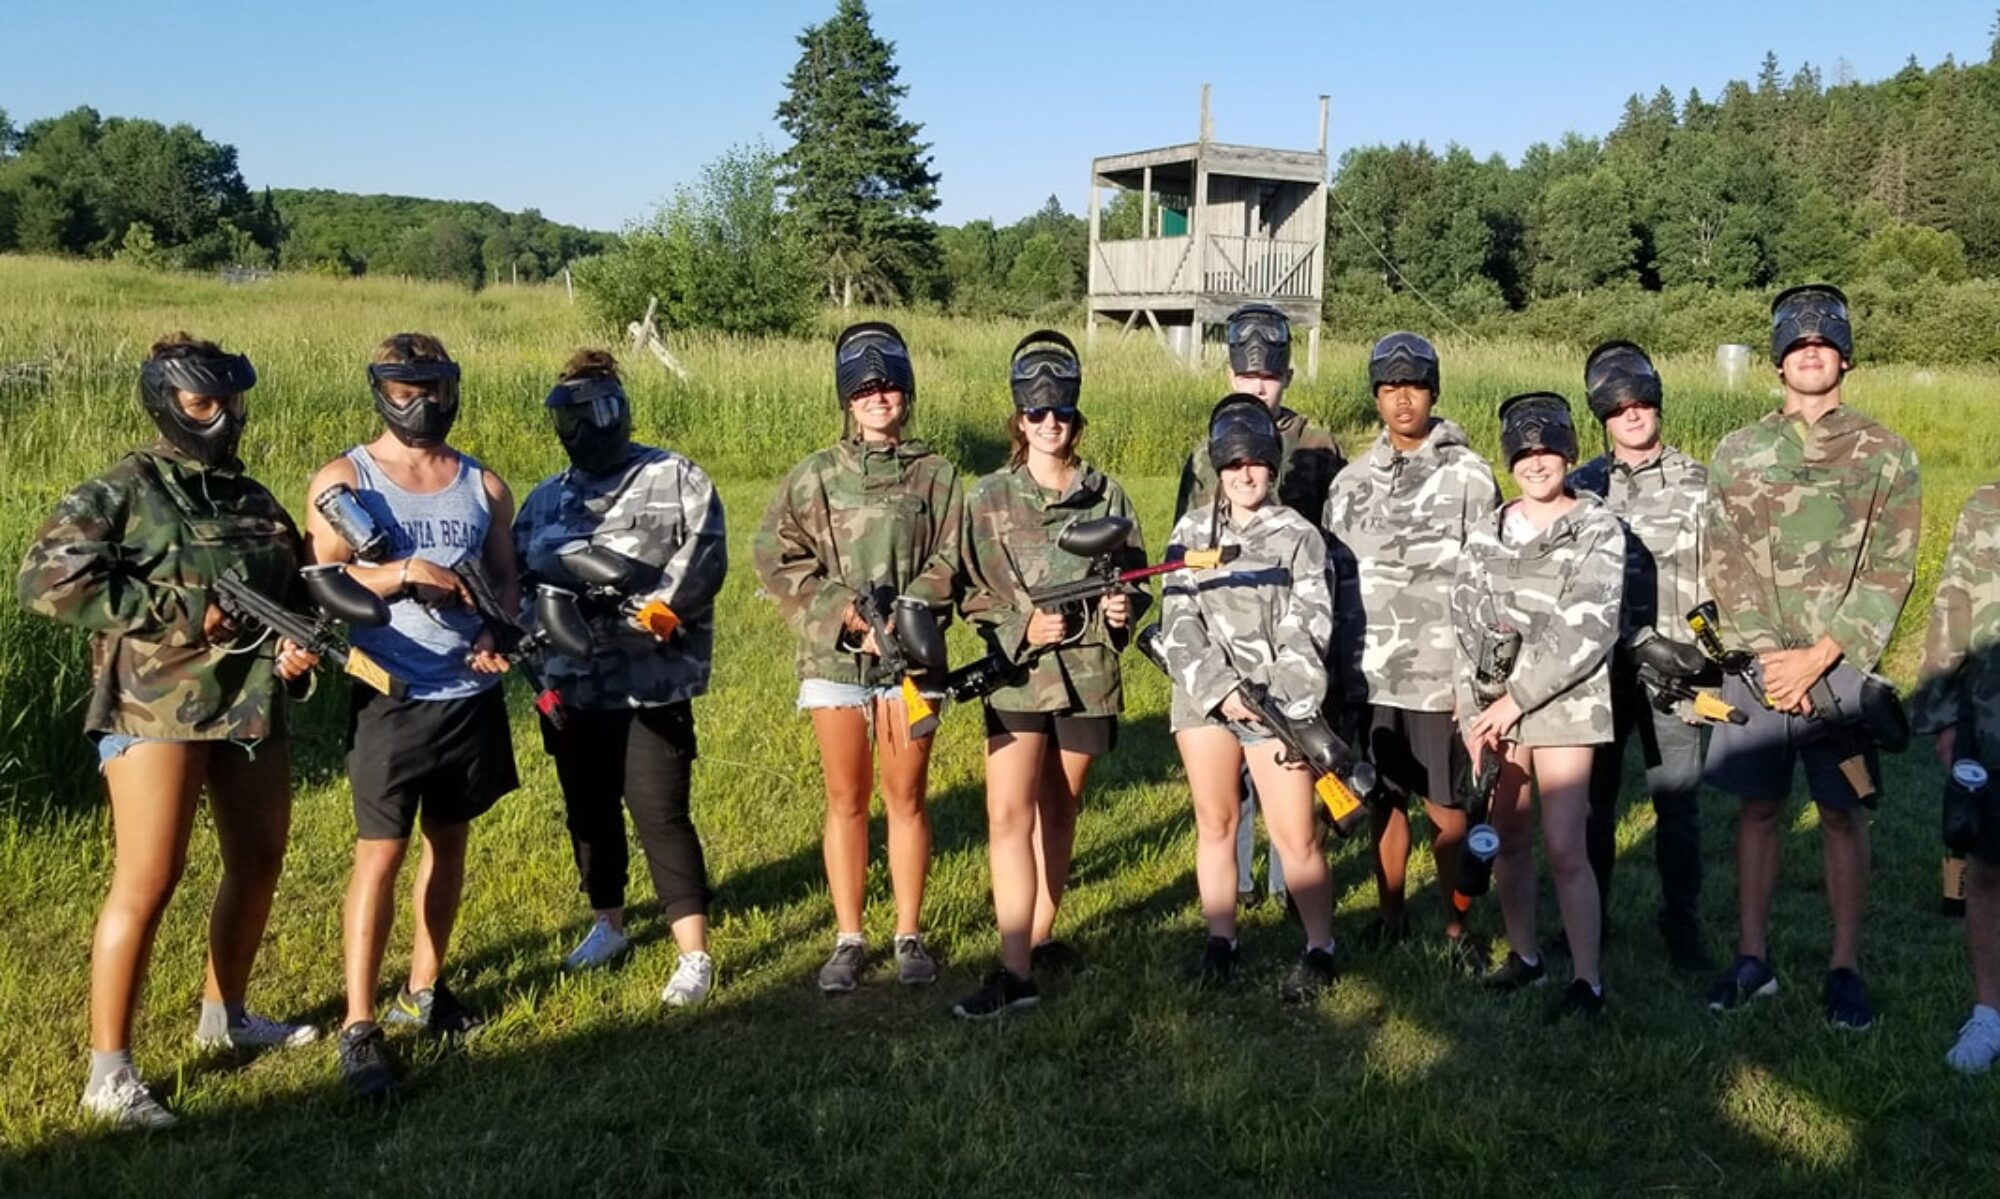 MJD Paintball Muskoka